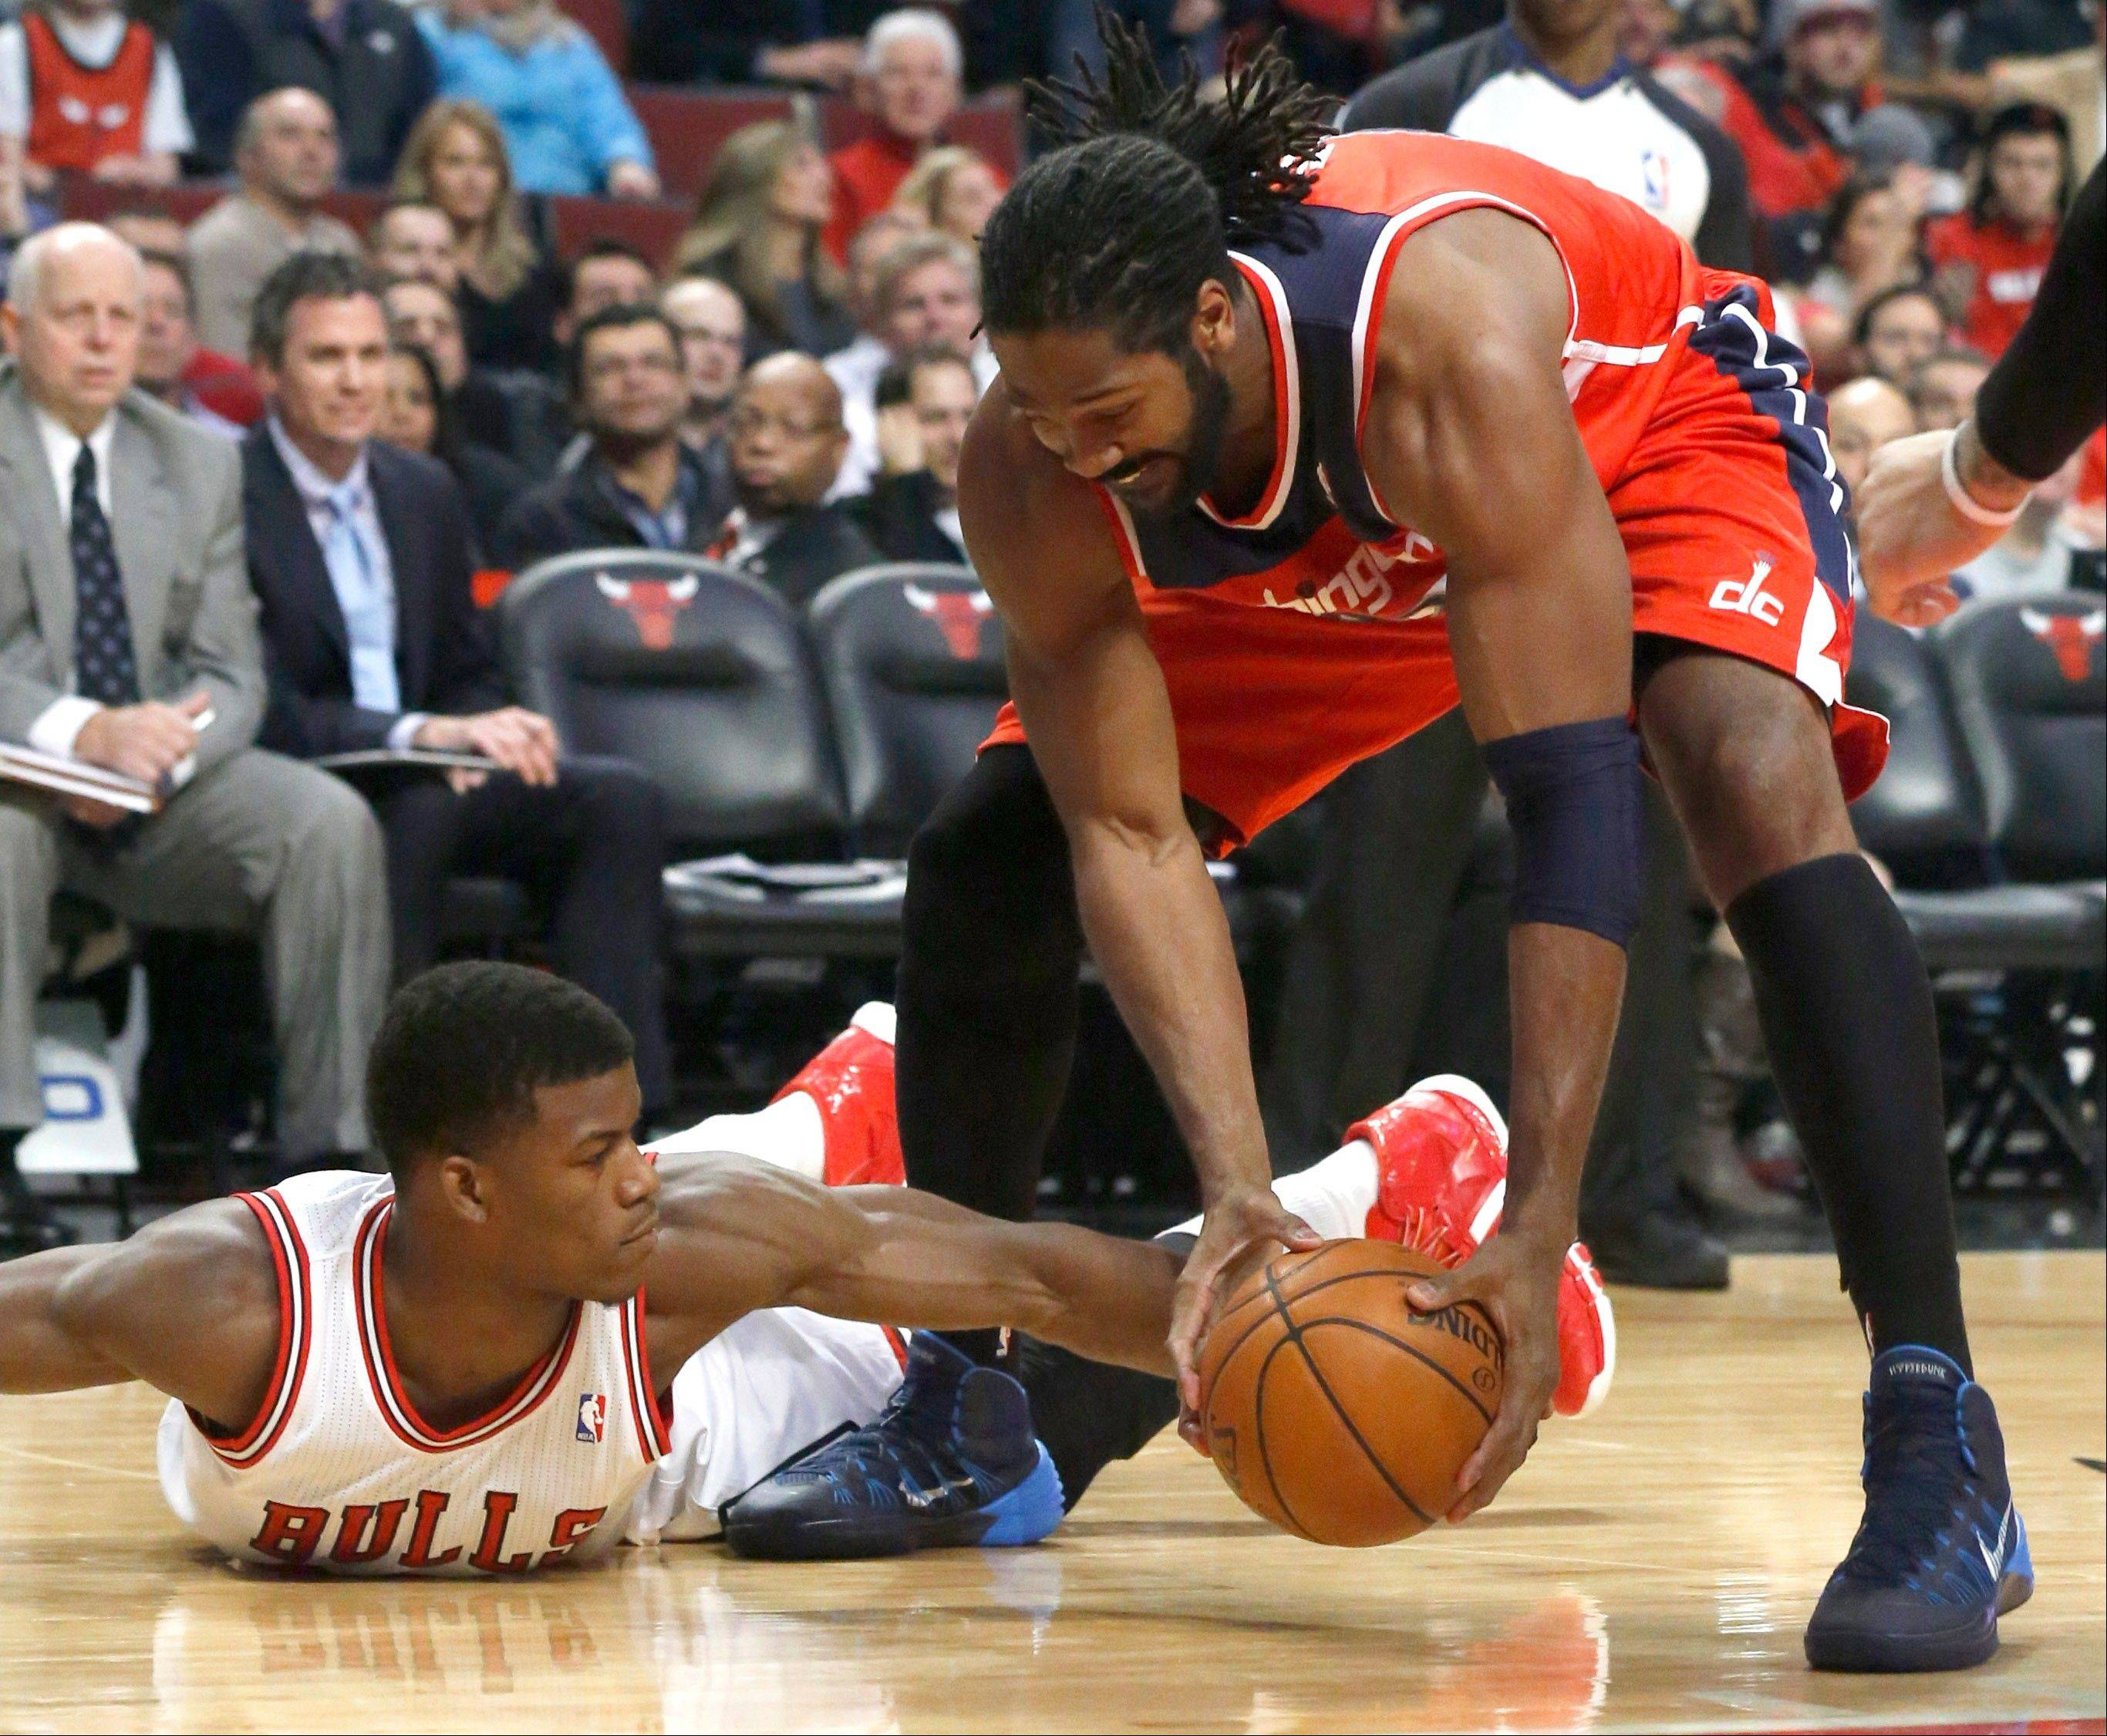 Bulls guard Jimmy Butler, left, battles Washington Wizards forward Nene during the first half of an NBA basketball game, Monday, Jan. 13, 2014, in Chicago.